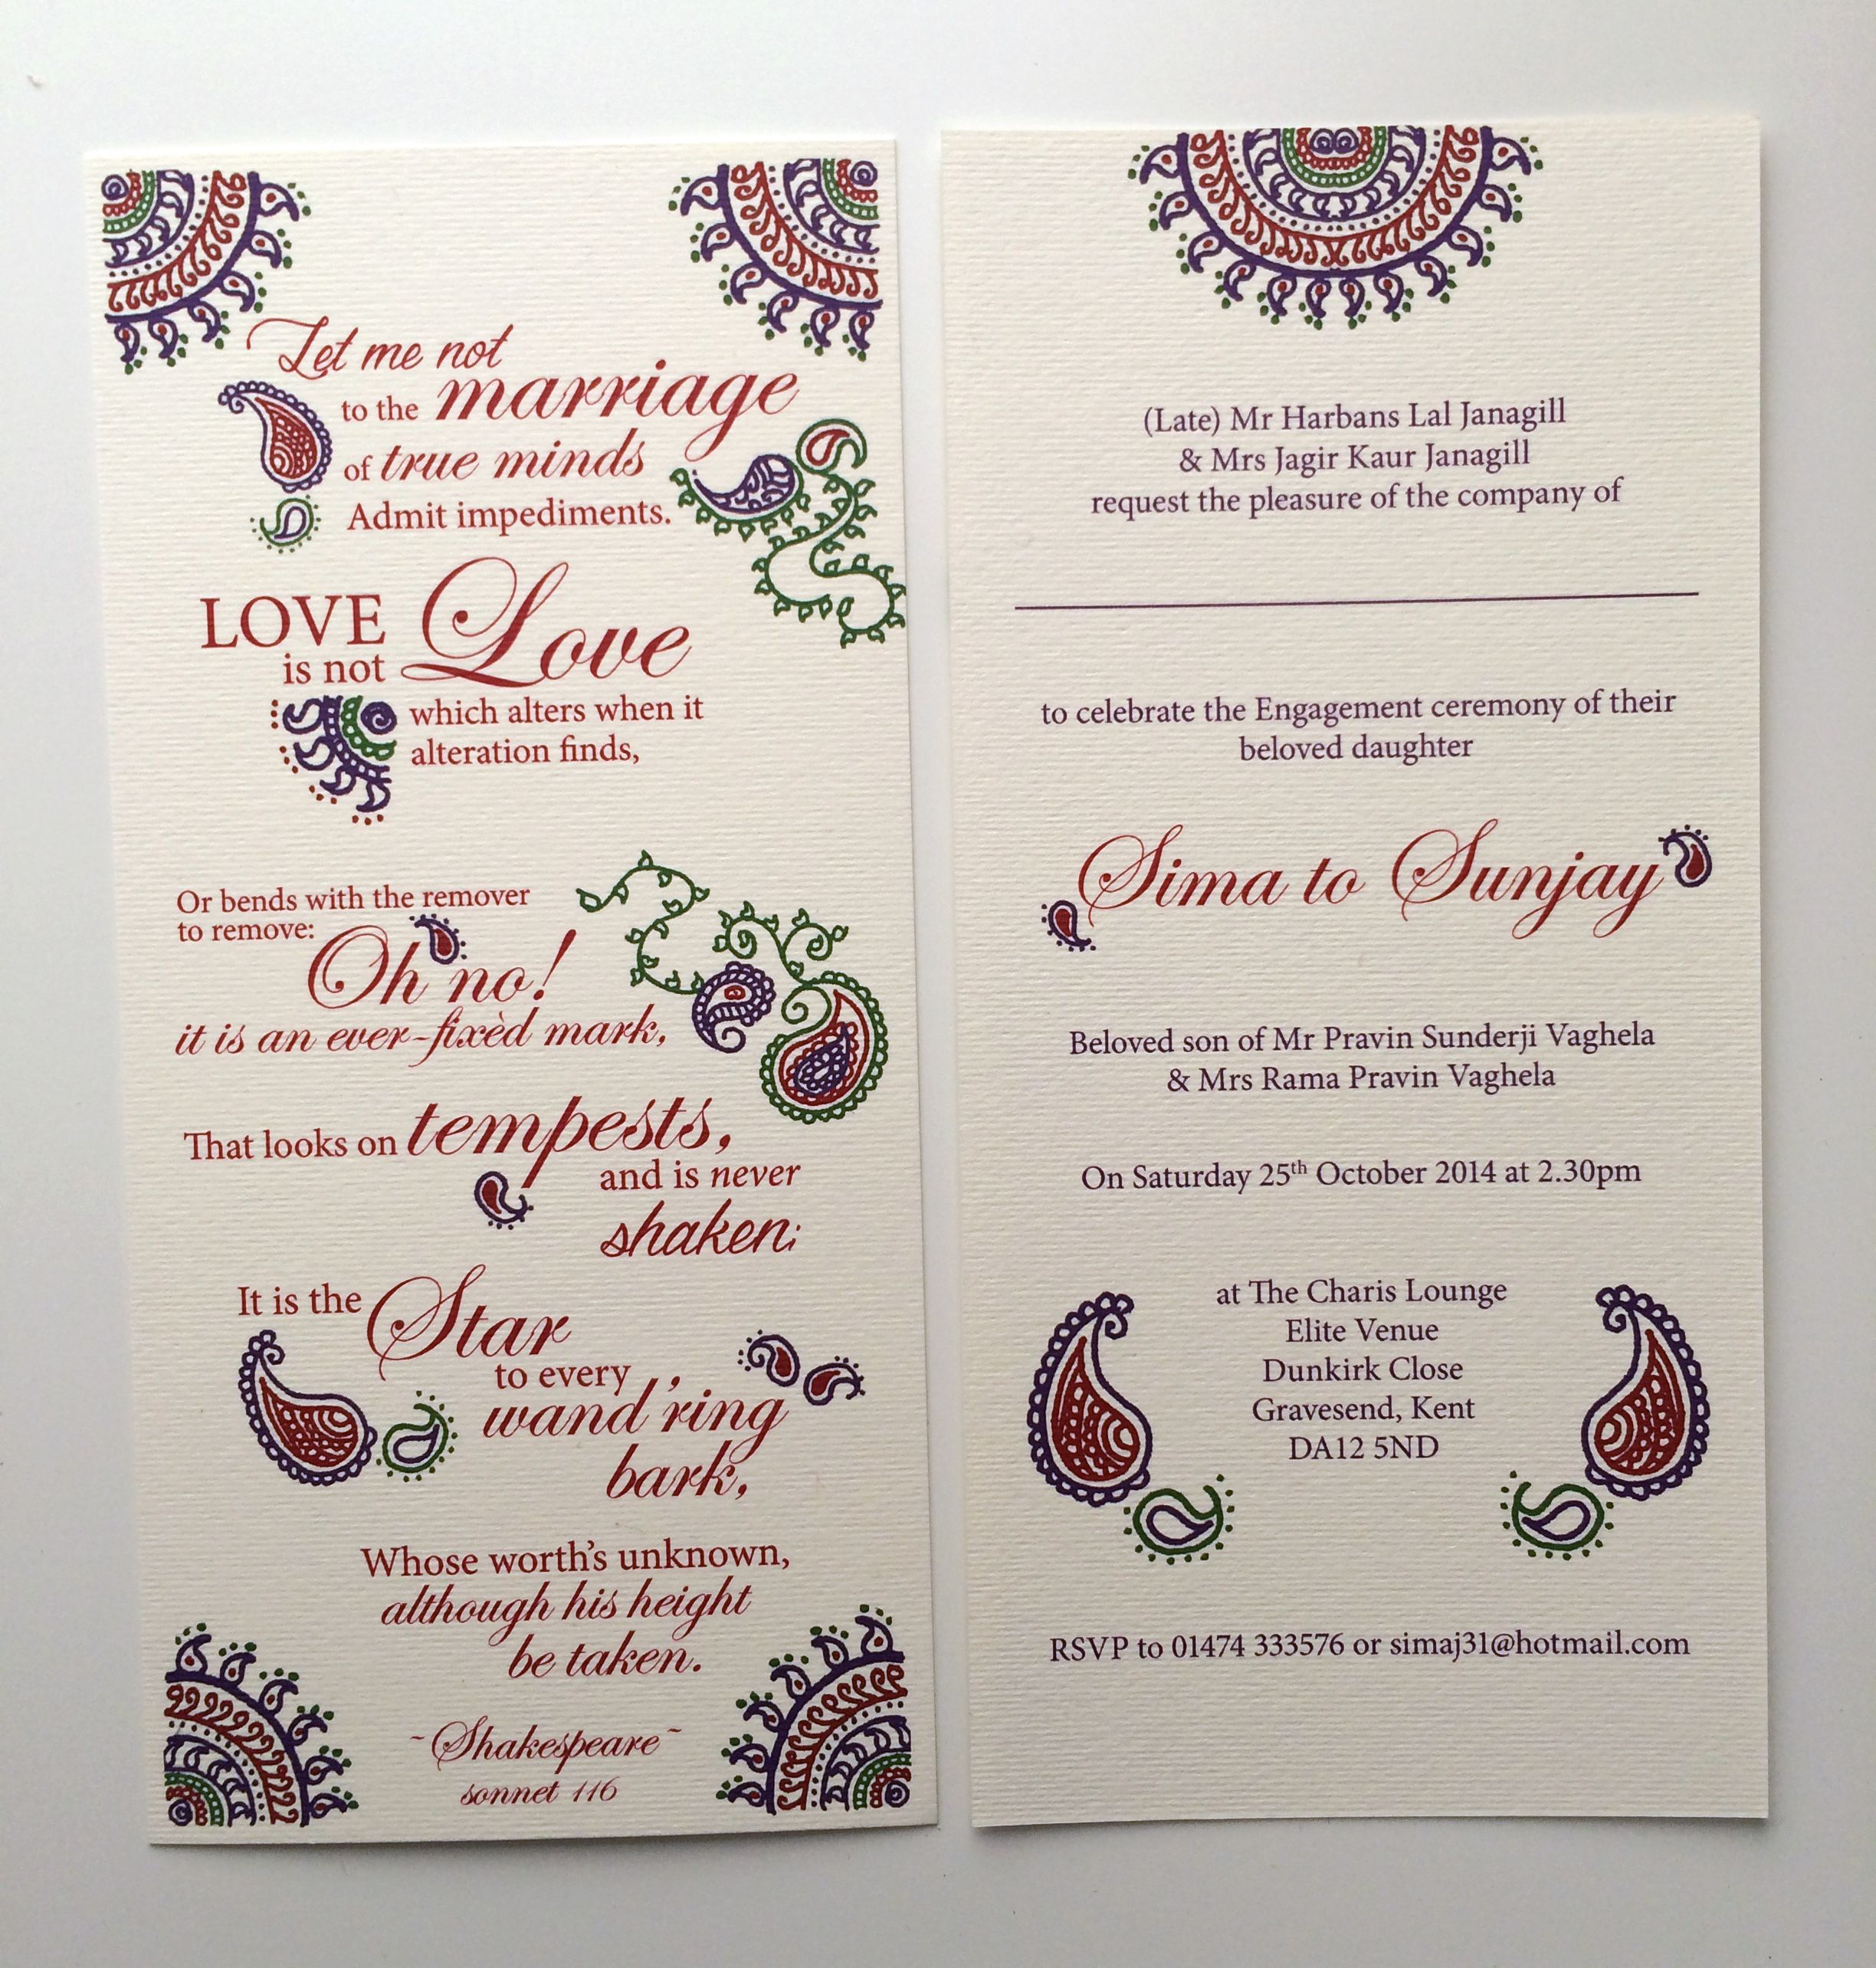 muslim wedding card invitation quotes%0A Shakespeare Sonnet engagement  sagai  hindu wedding invitation  Designed  with hand drawn patterns